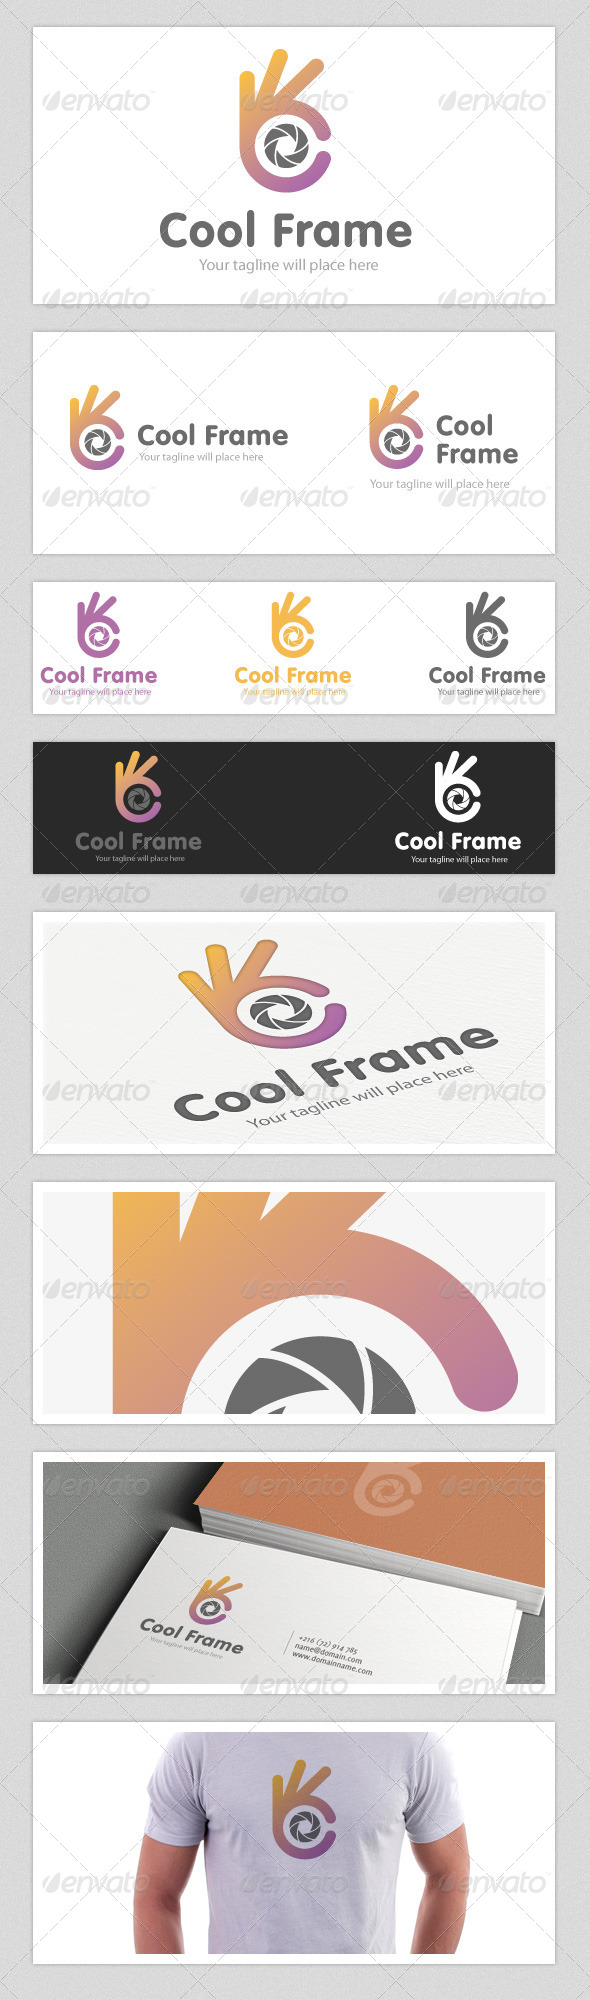 Cool Frame Logo - Vector Abstract